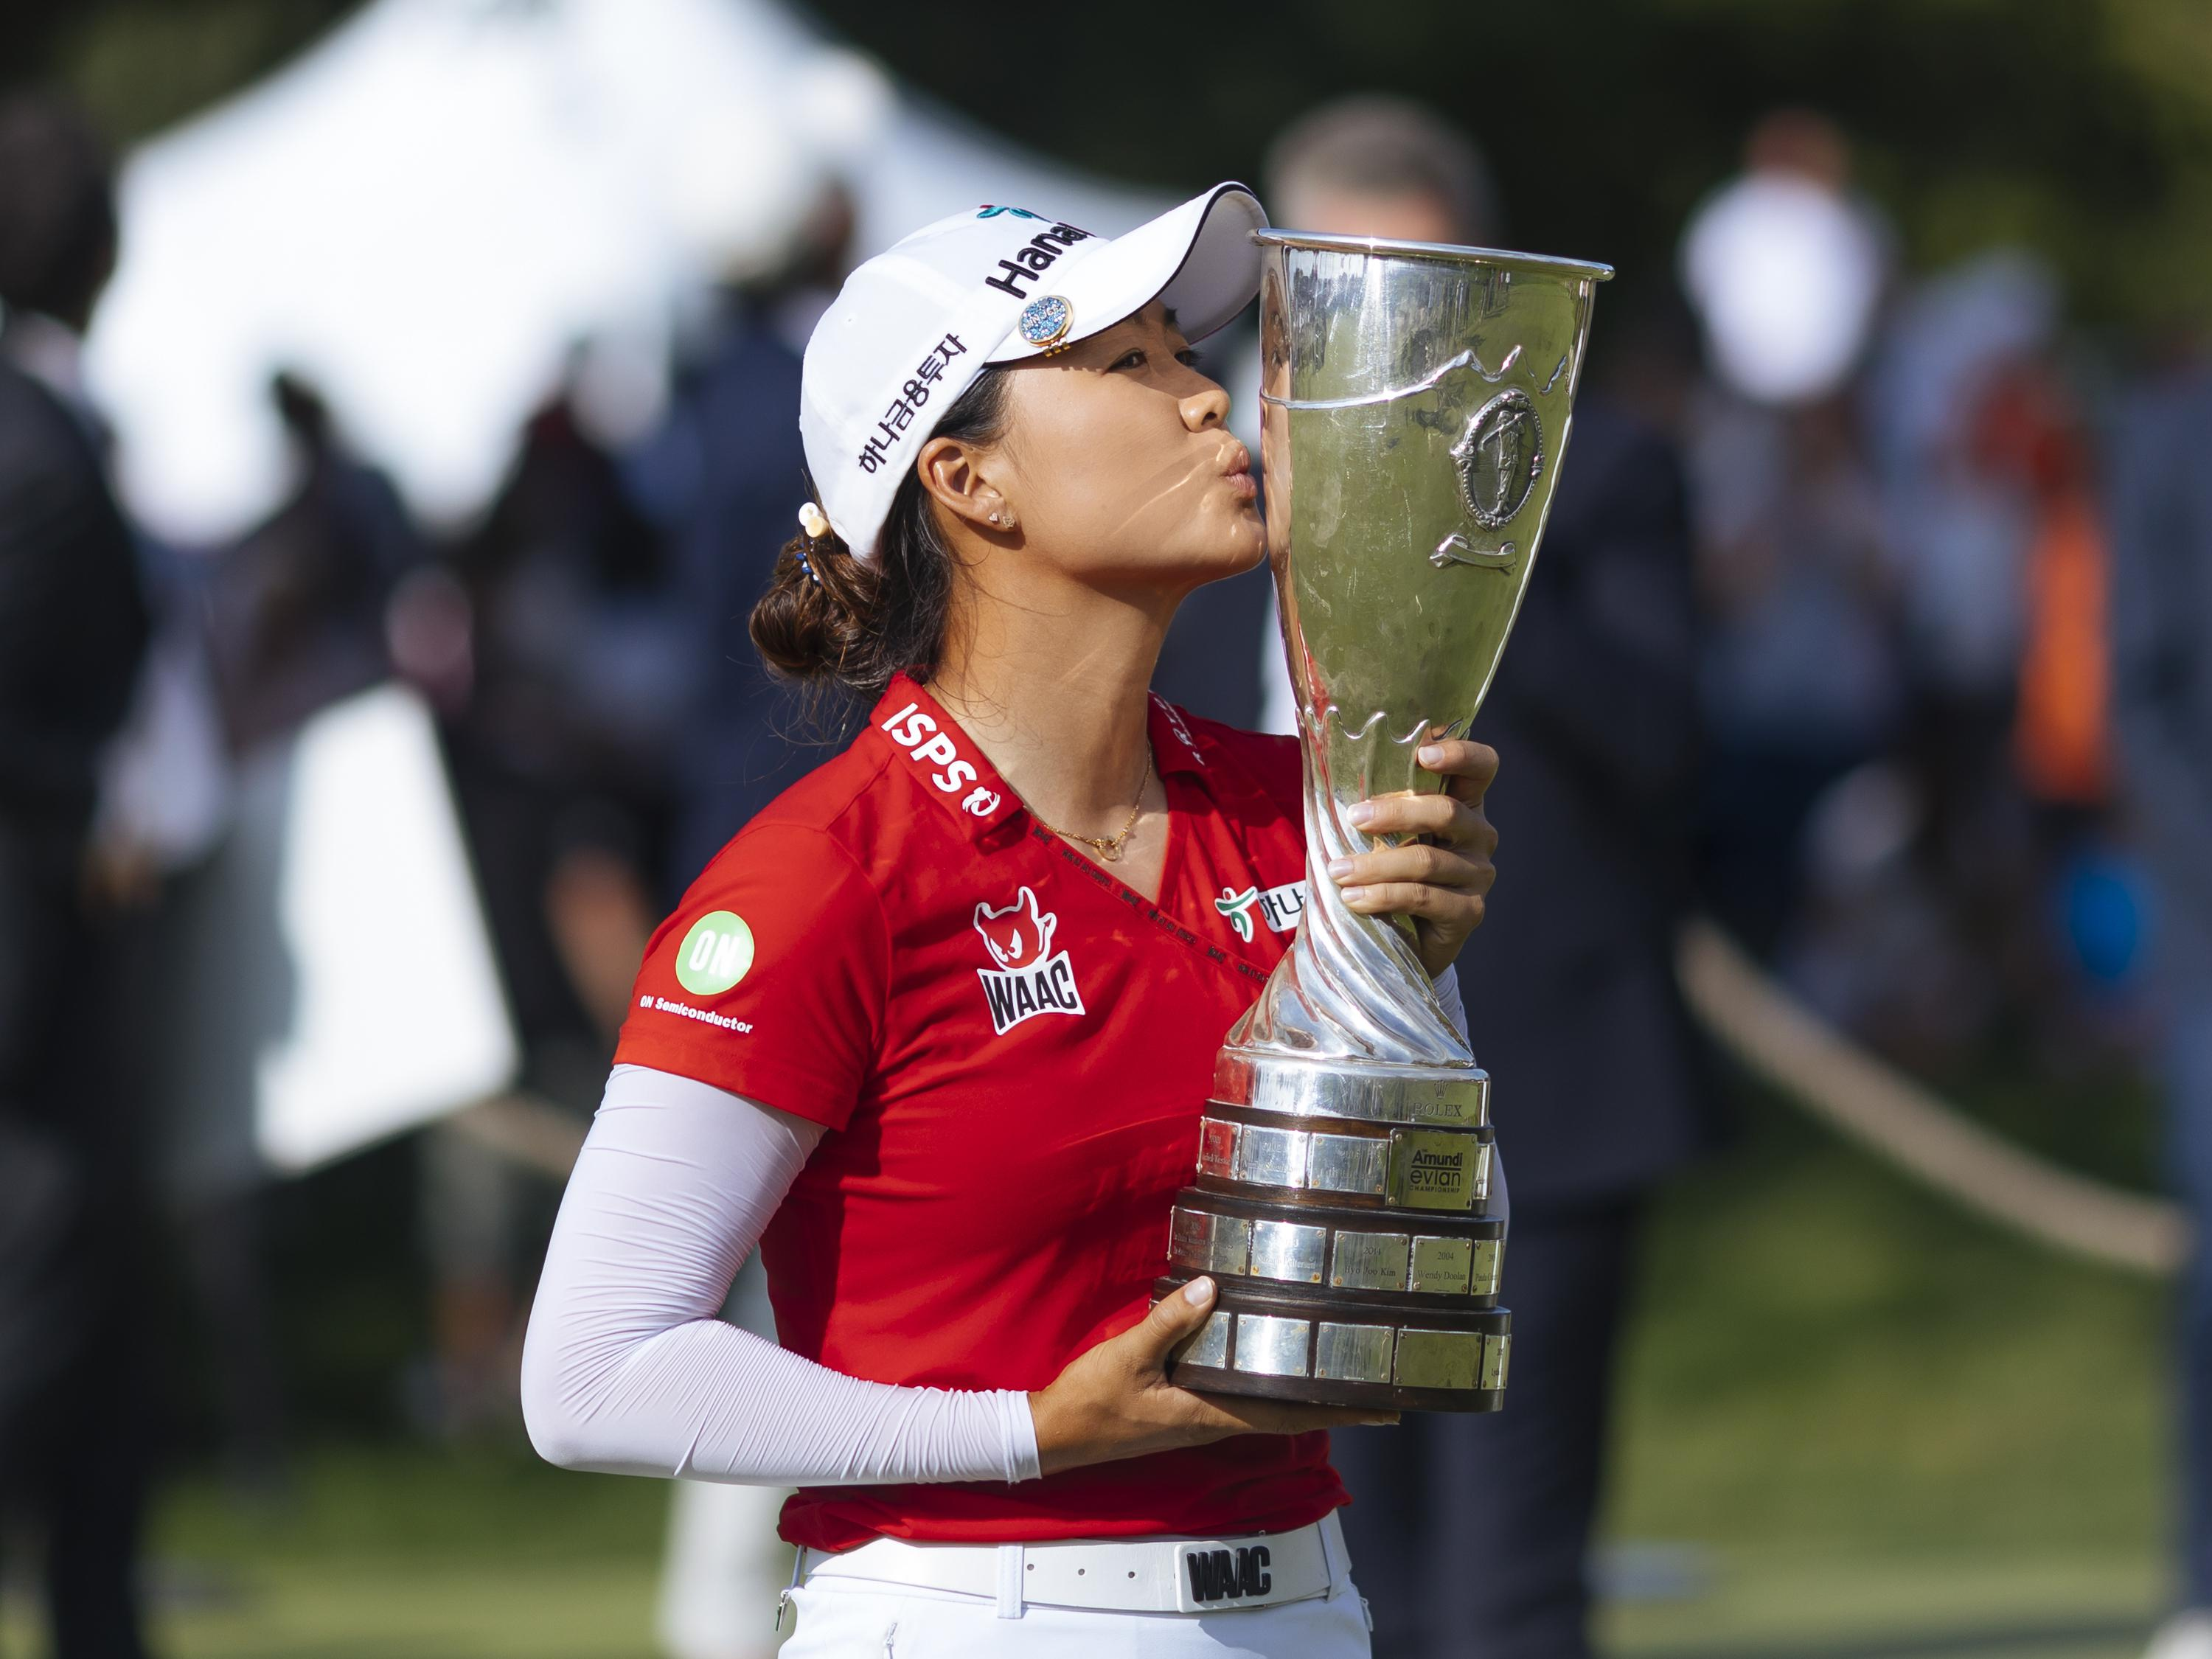 Lee wins her 1st major after beating Lee6 in playoff